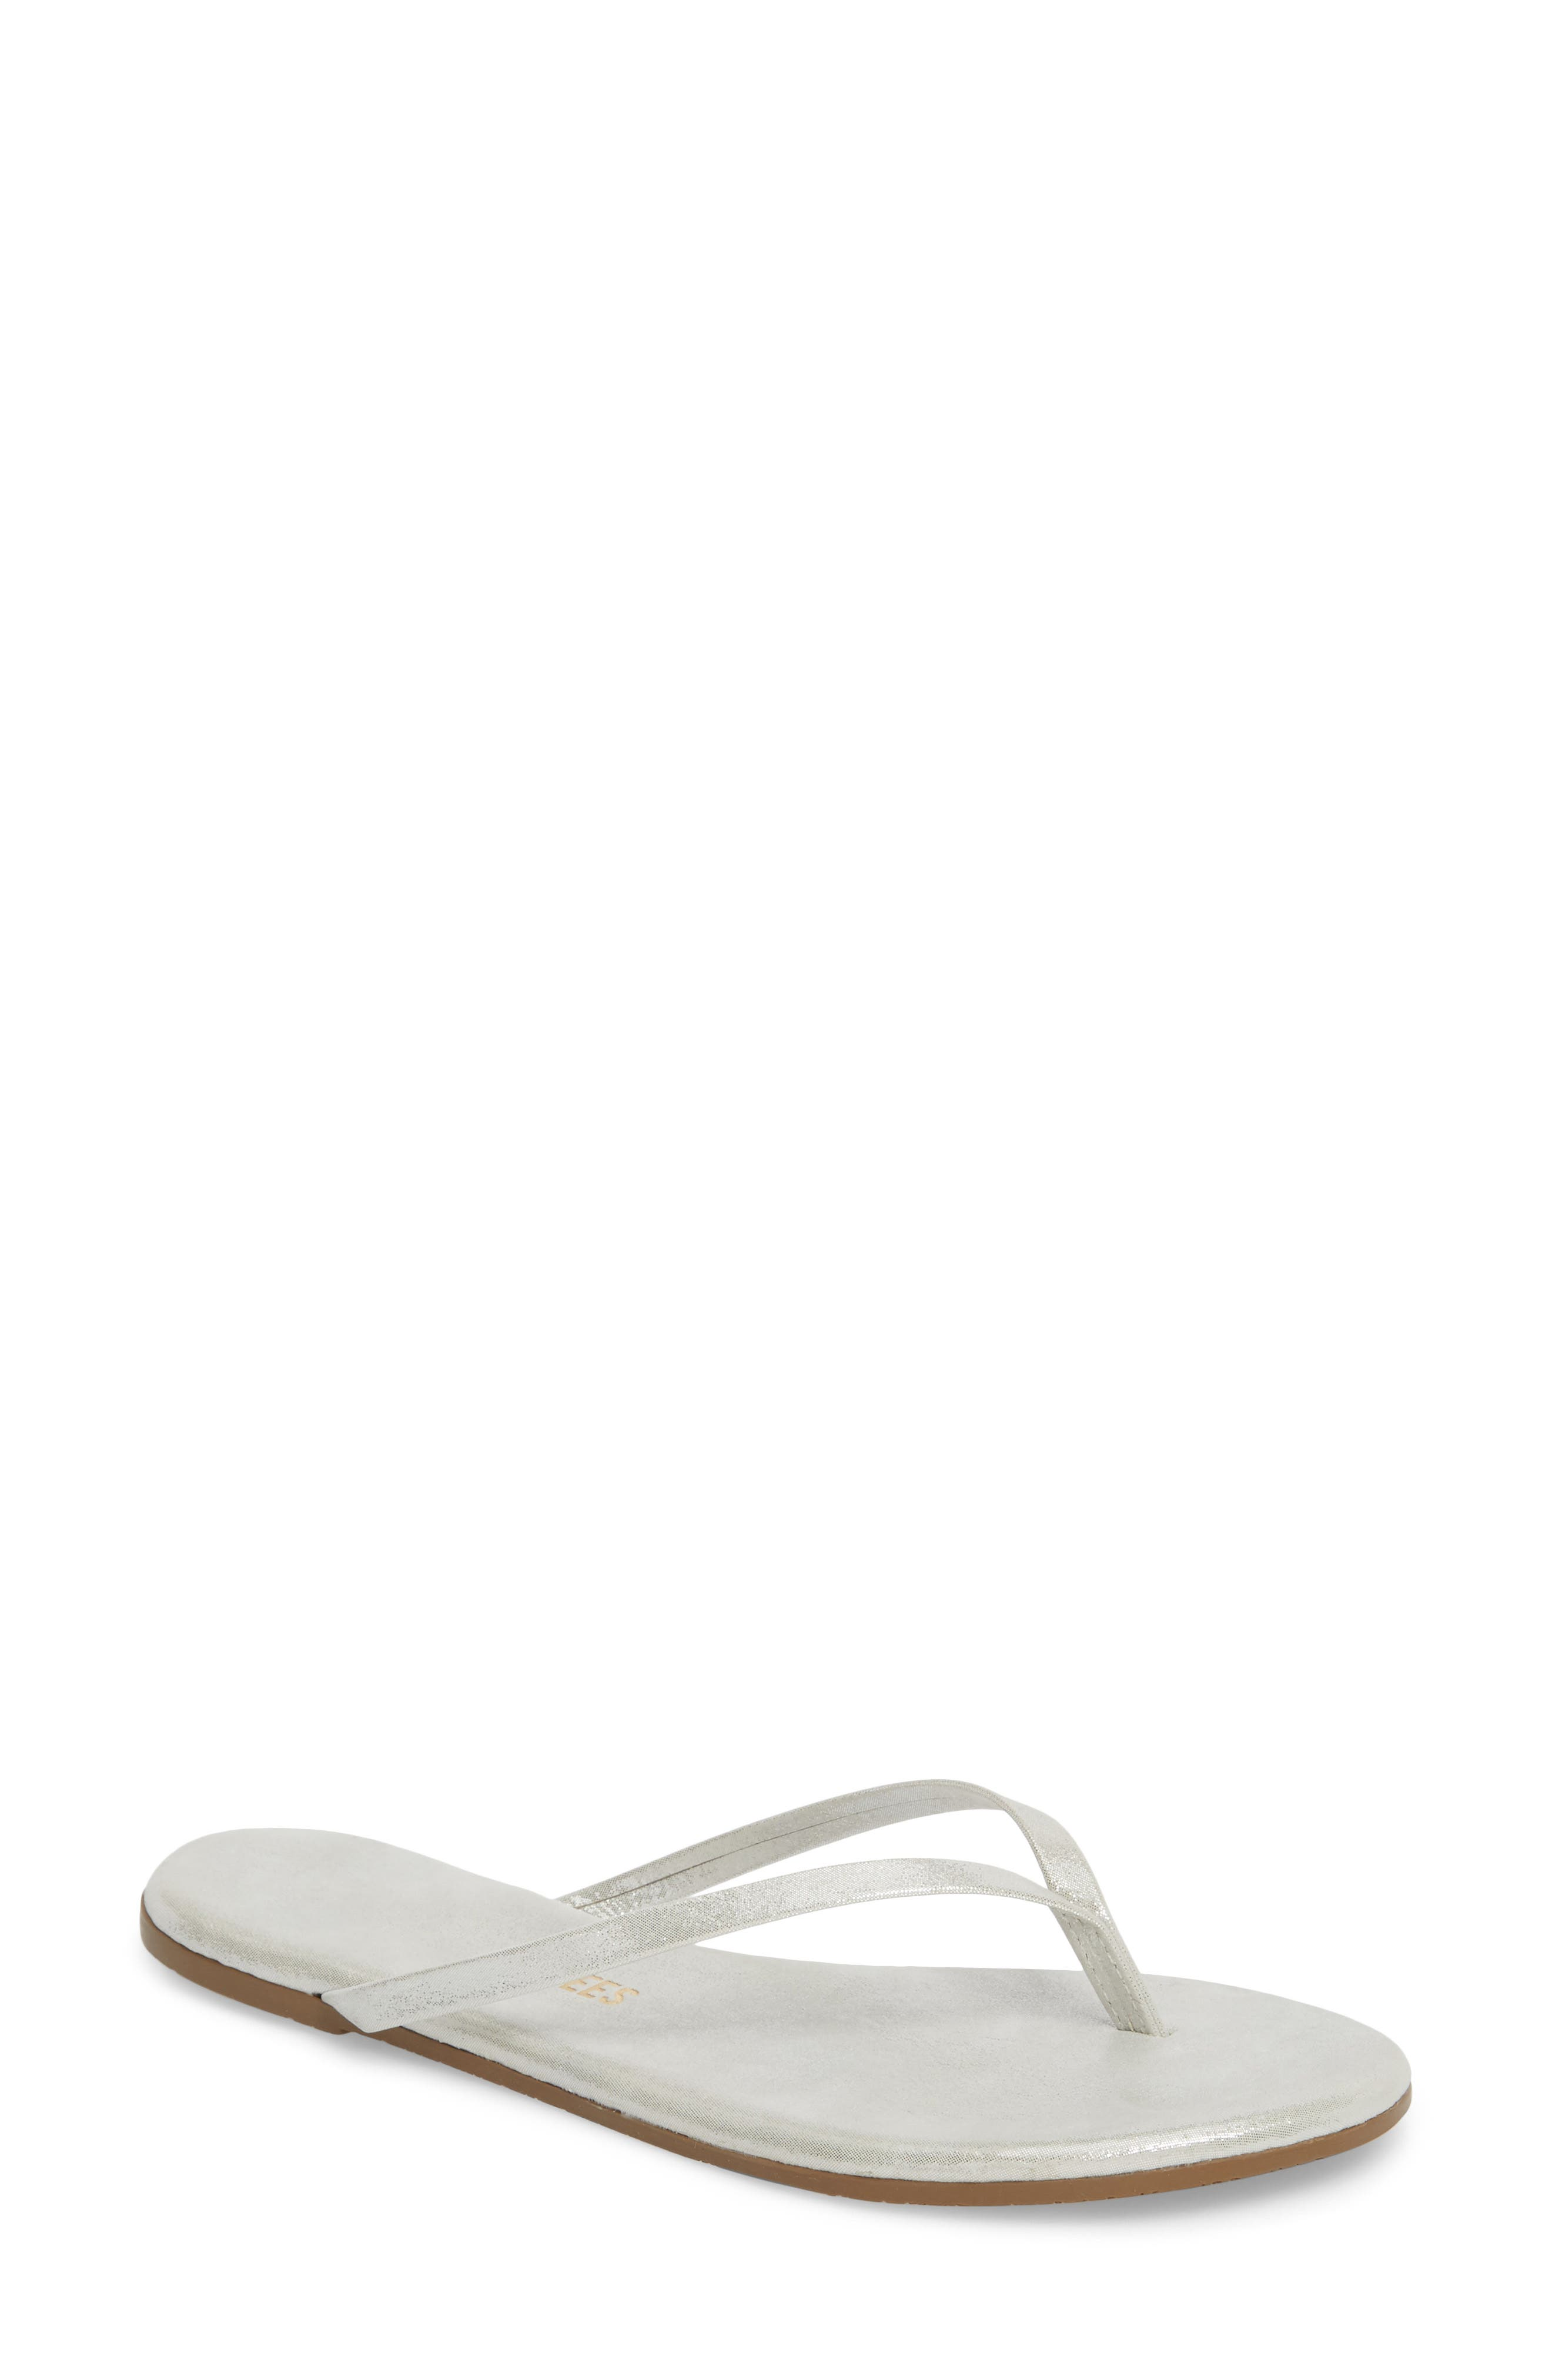 'Glitters' Flip Flop,                         Main,                         color, GLEAM LEATHER